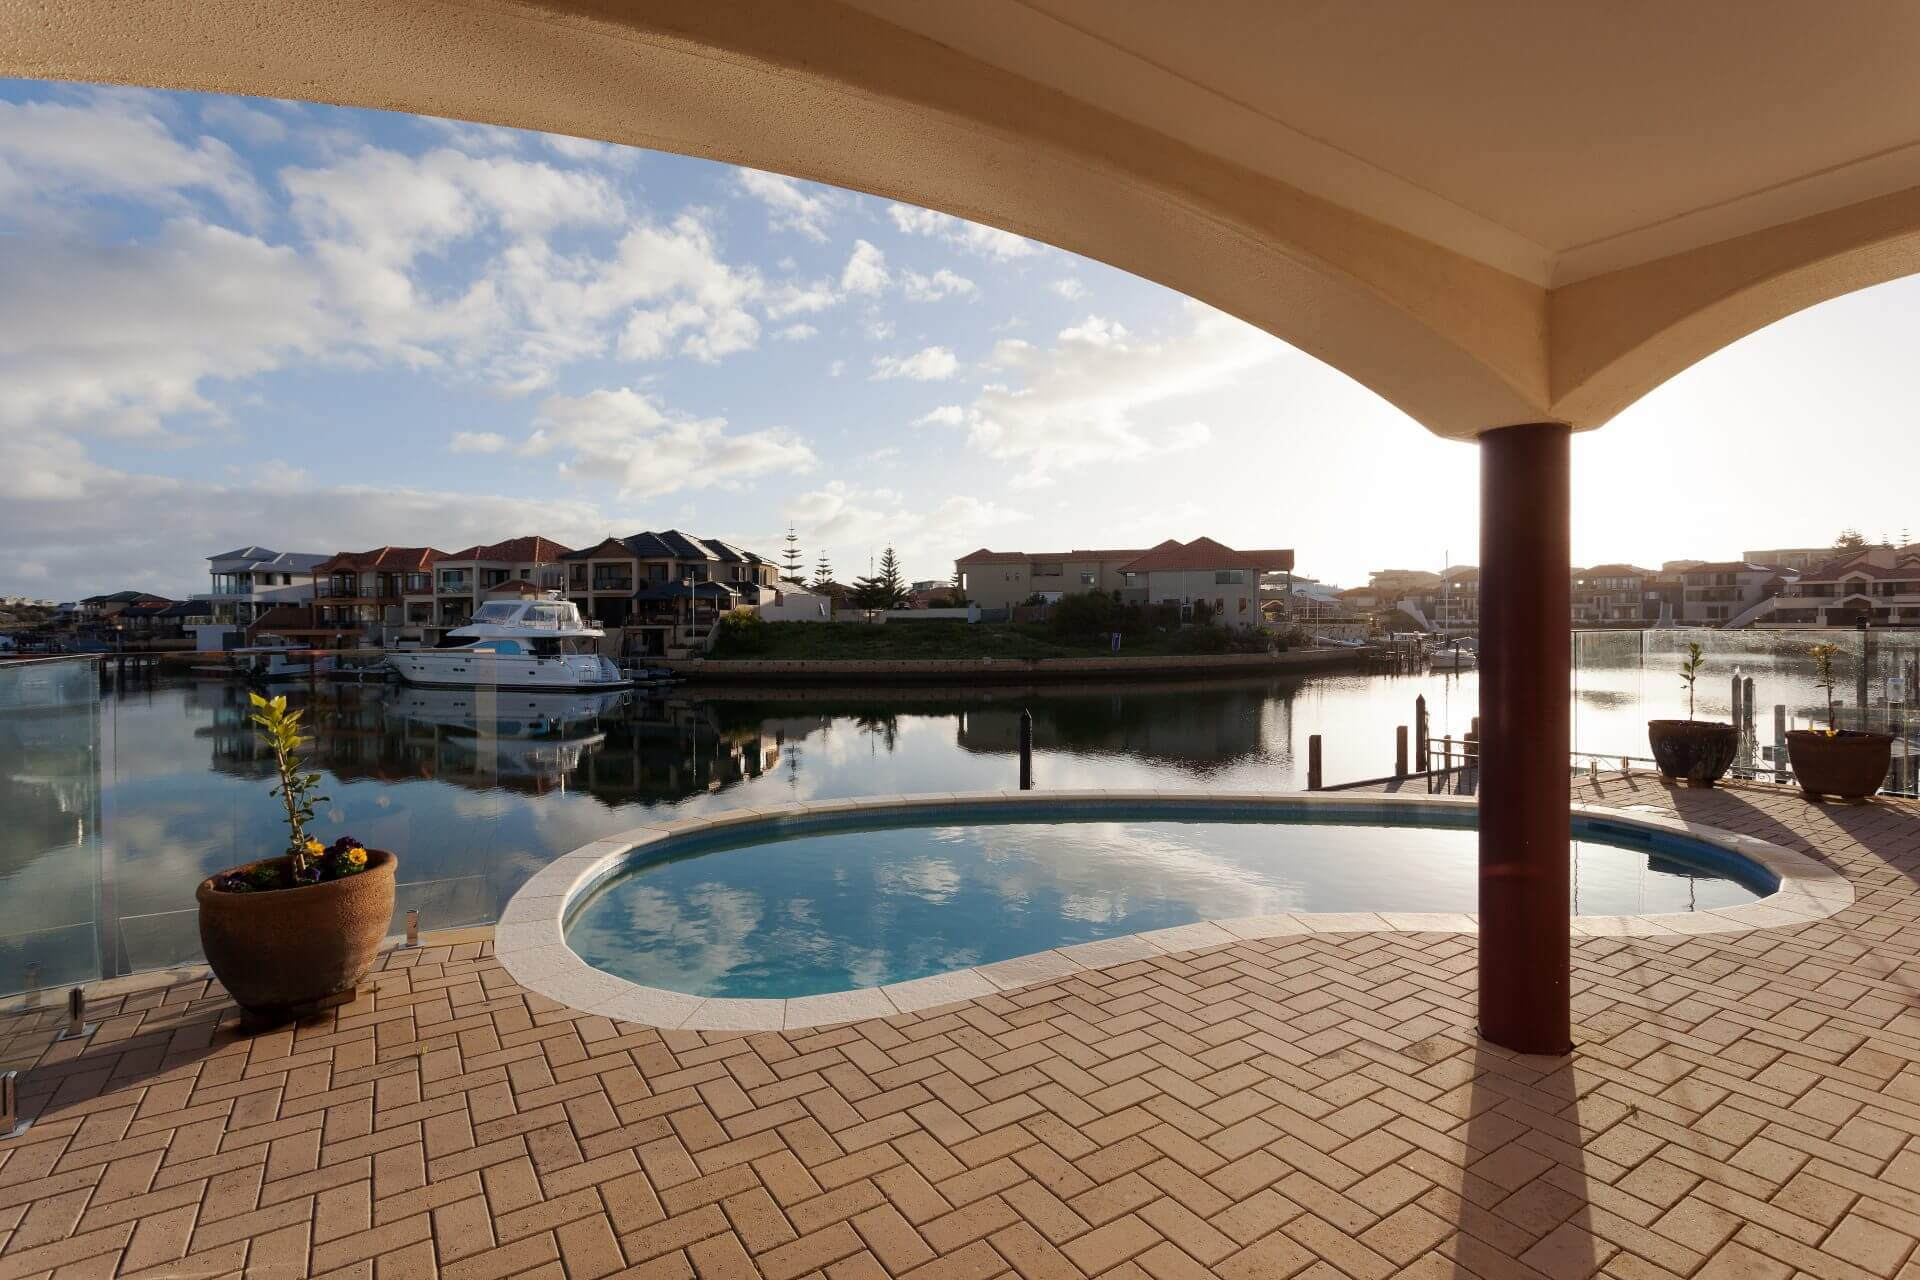 Pool and view of harbour